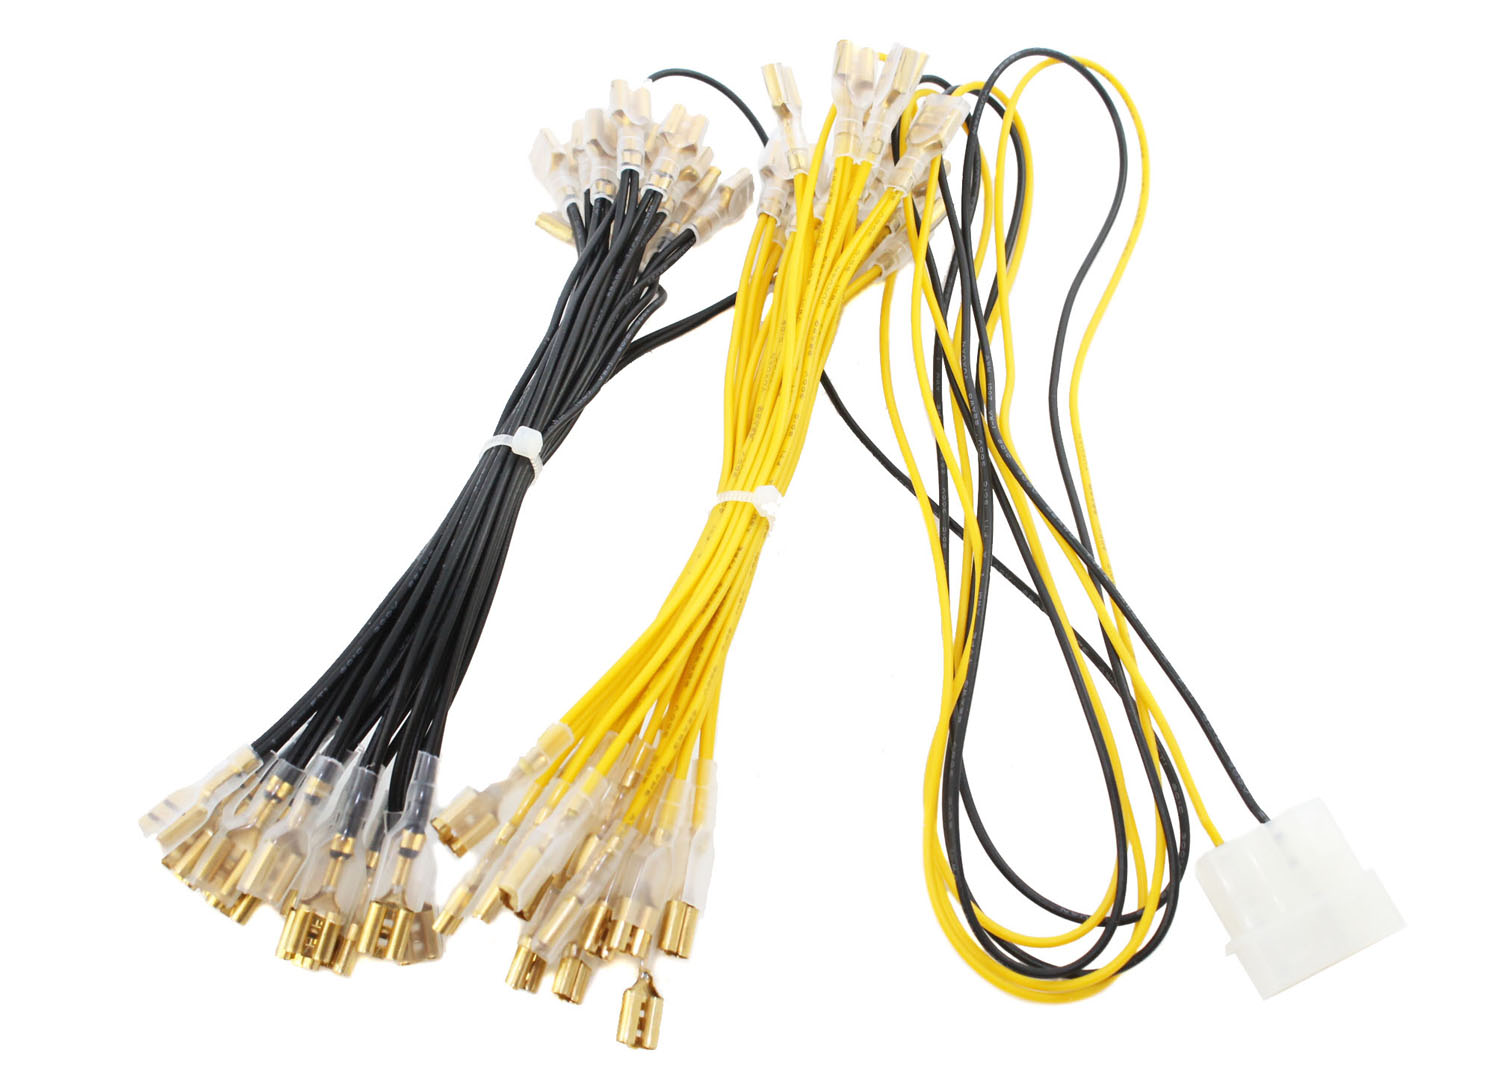 hight resolution of home wire electrical led button wiring harness